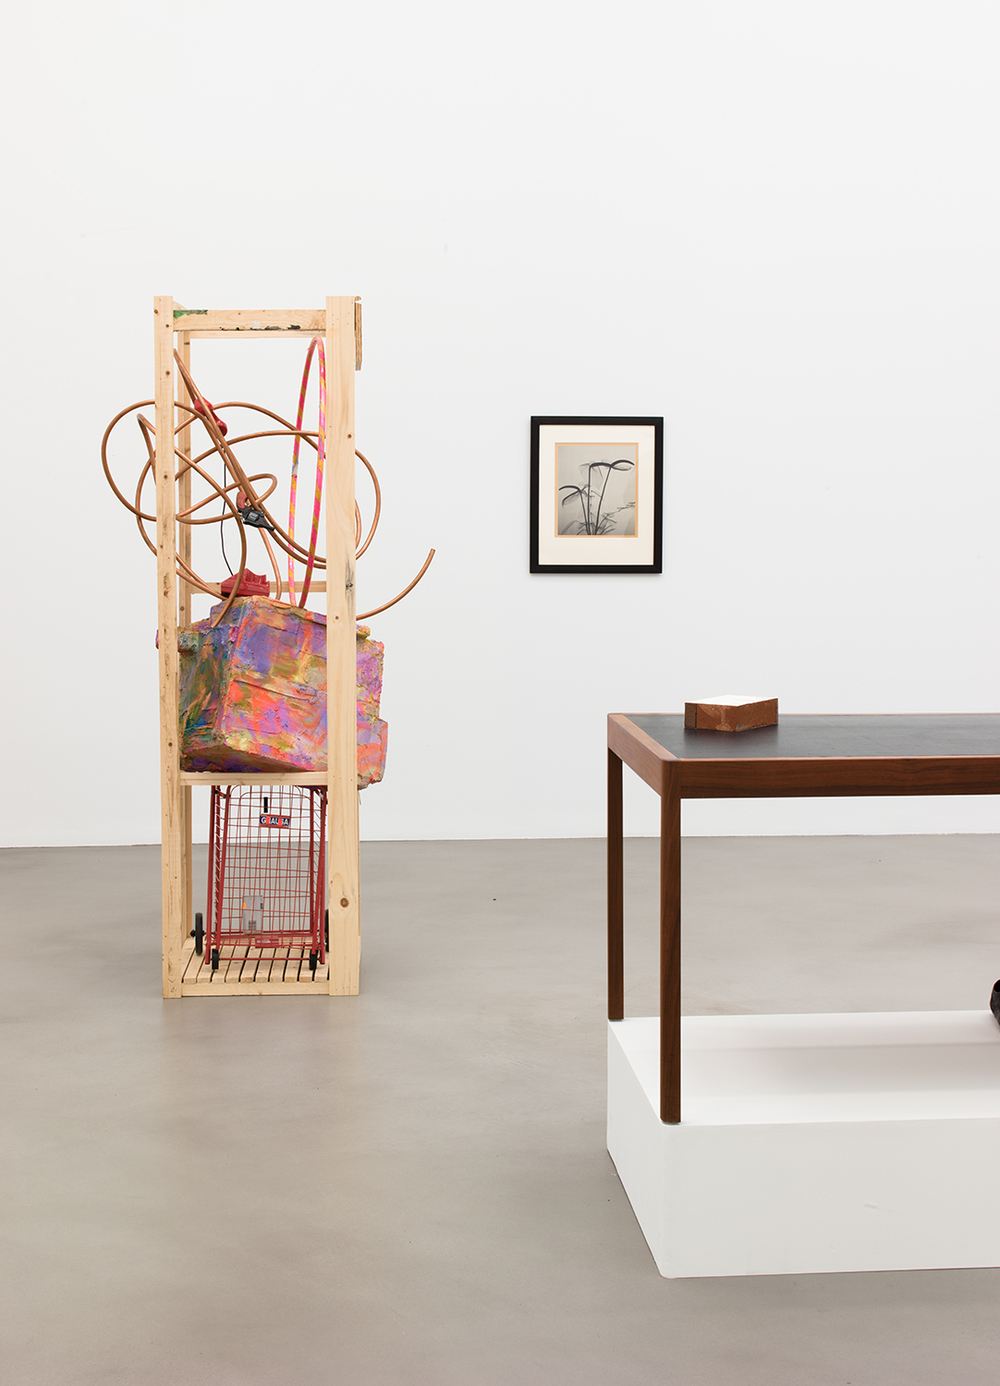 A Machinery for Living , Petzel, New York, NY, 2014.    Rachel Harrison, Dr. Dain L. Tasker, BassamFellows, and Claire Fontaine